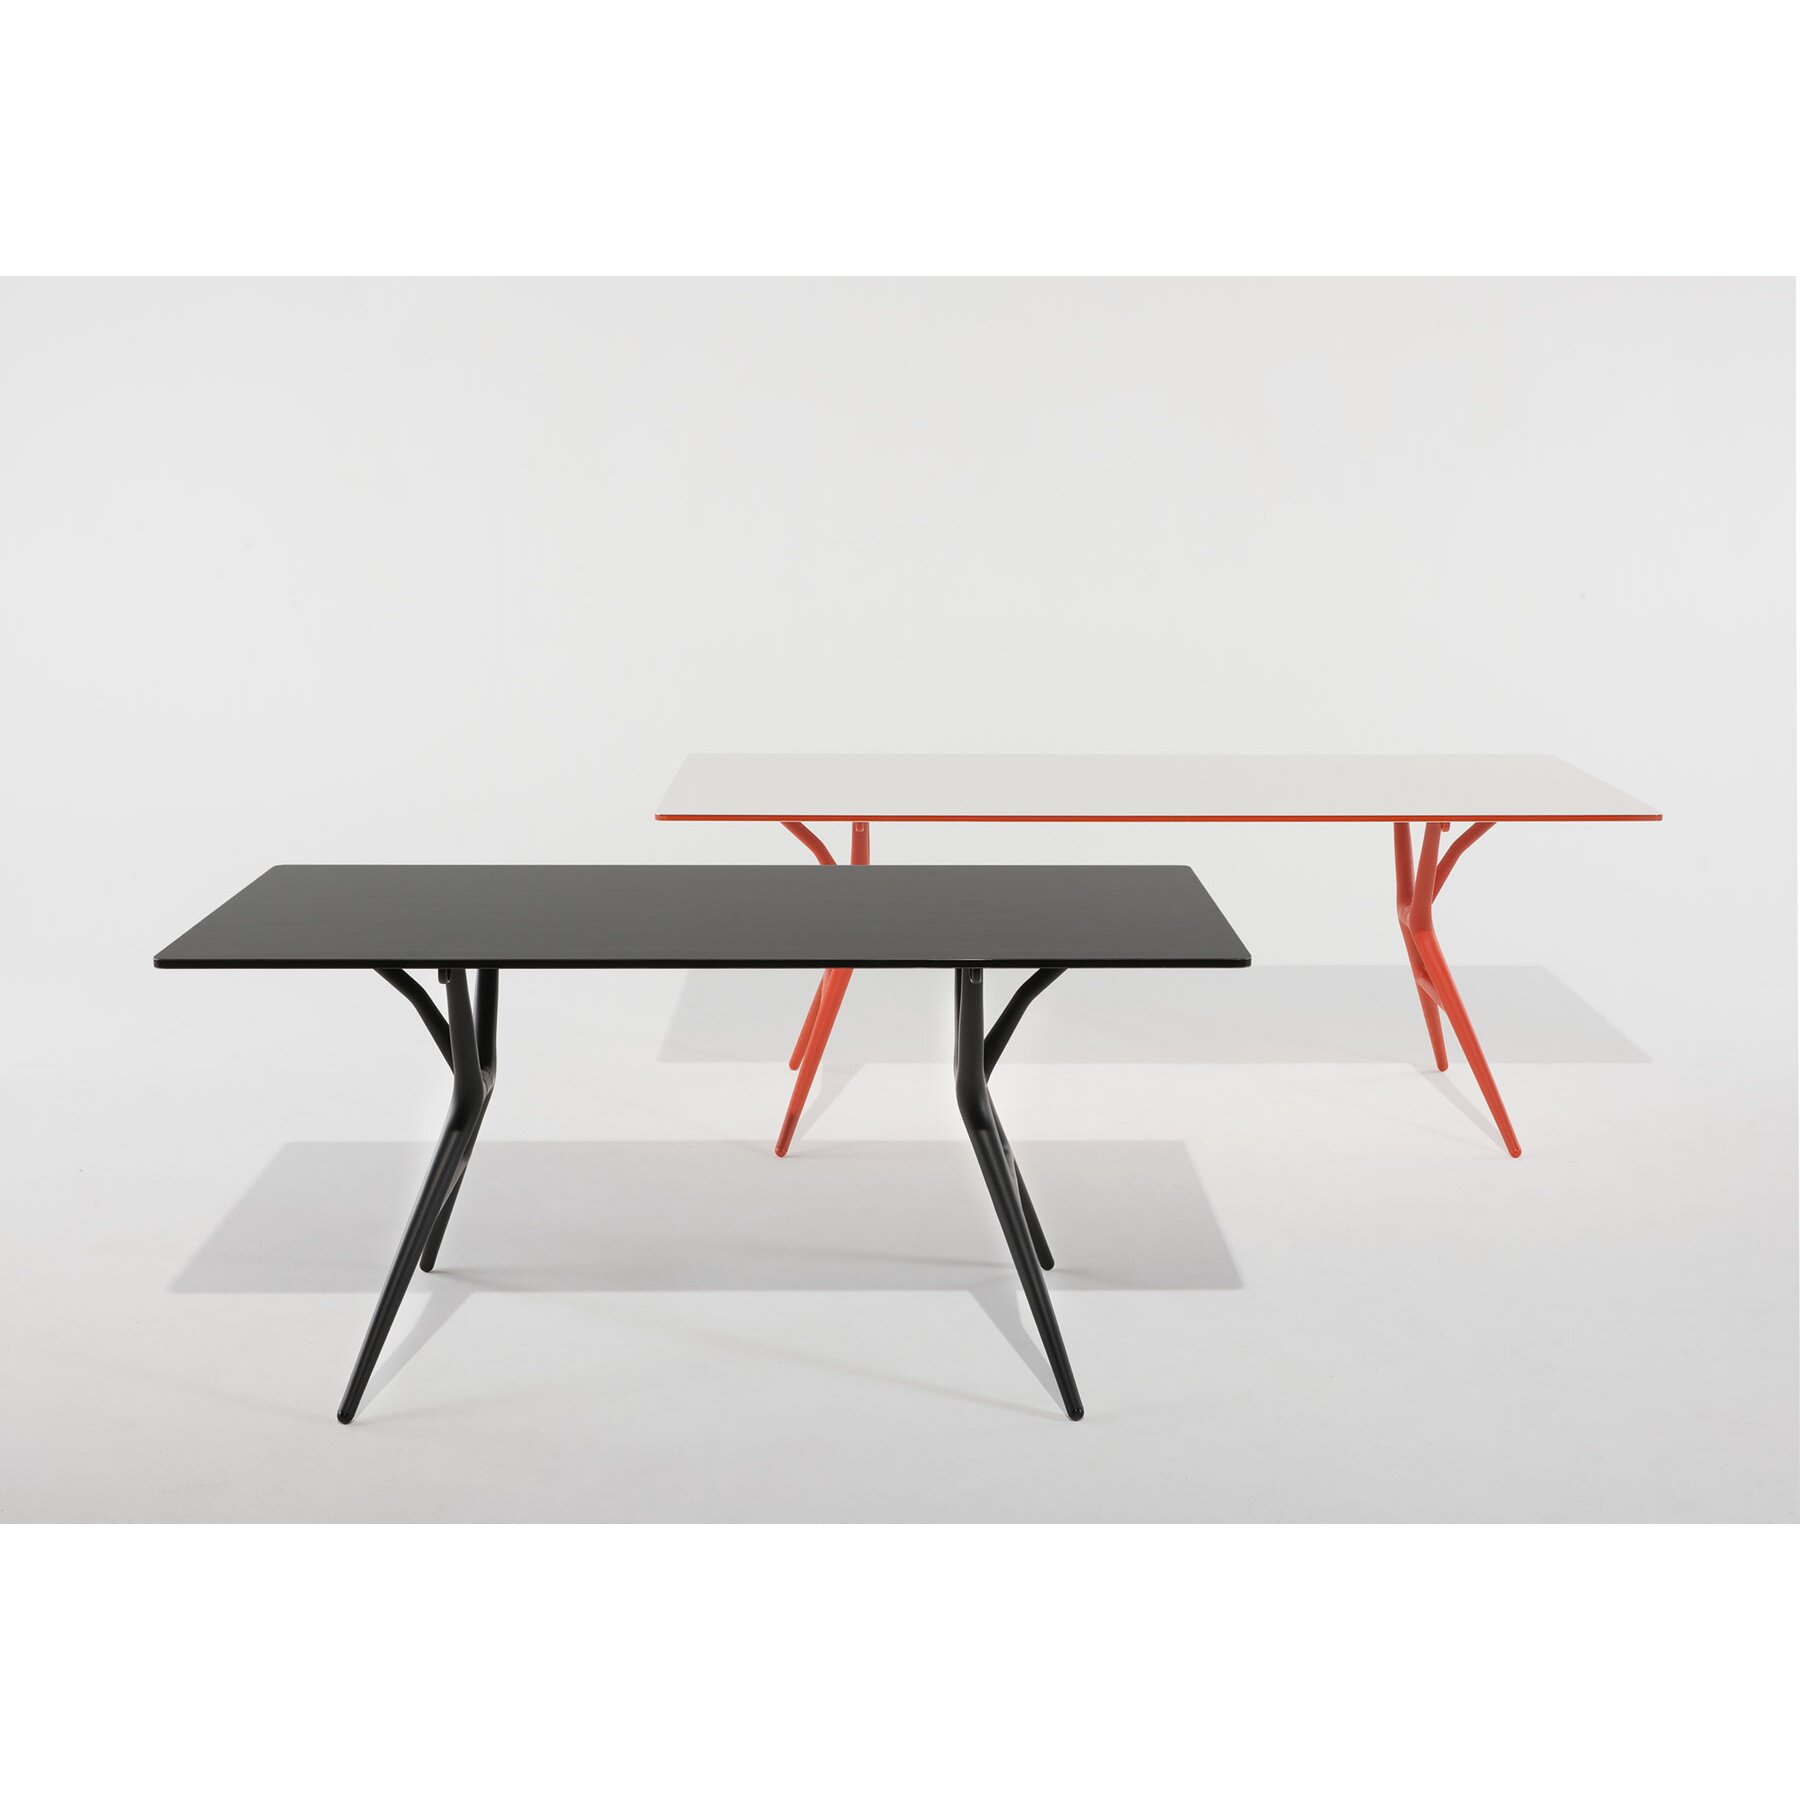 Kartell Round Table Spoon Training Table Reviews Allmodern